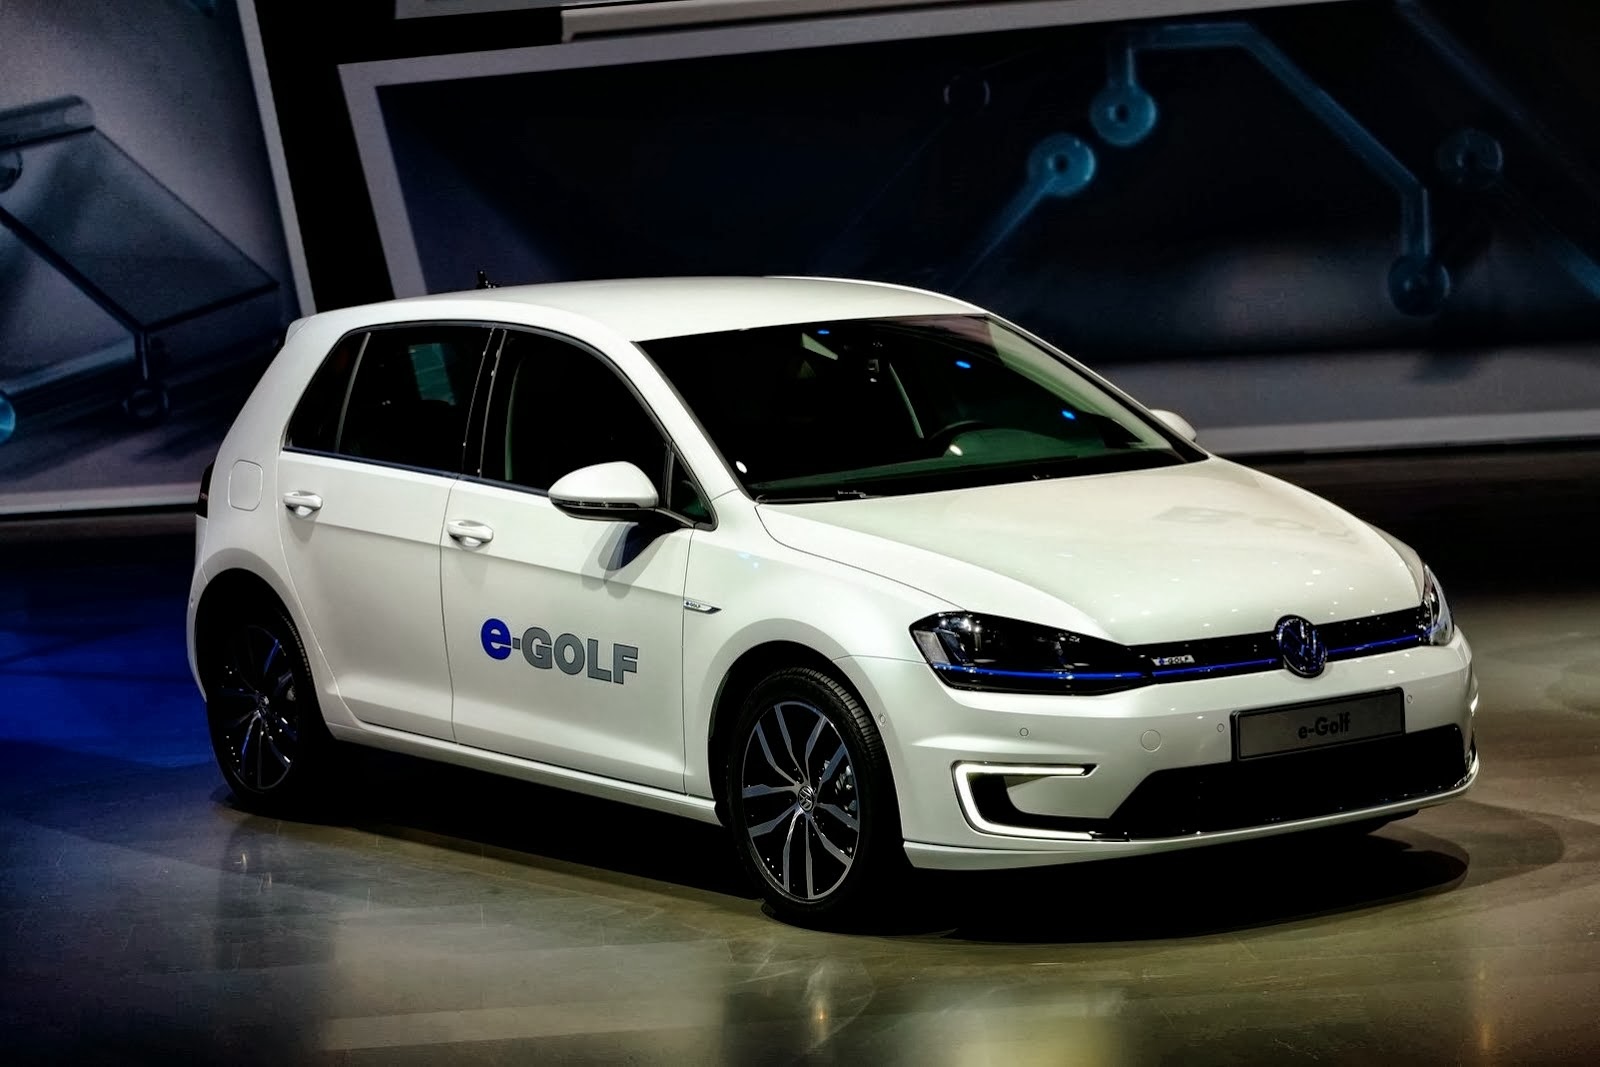 Electric Motor Manufacturer Volkswagen E Golf Bi Wiring Speakers Diagram In The Fast Lane With Auto Emporium Vw S Battery Powered To Will Bring Its First Vehicle United States Two Years A Company Official Told Ny Times That Go On Sale